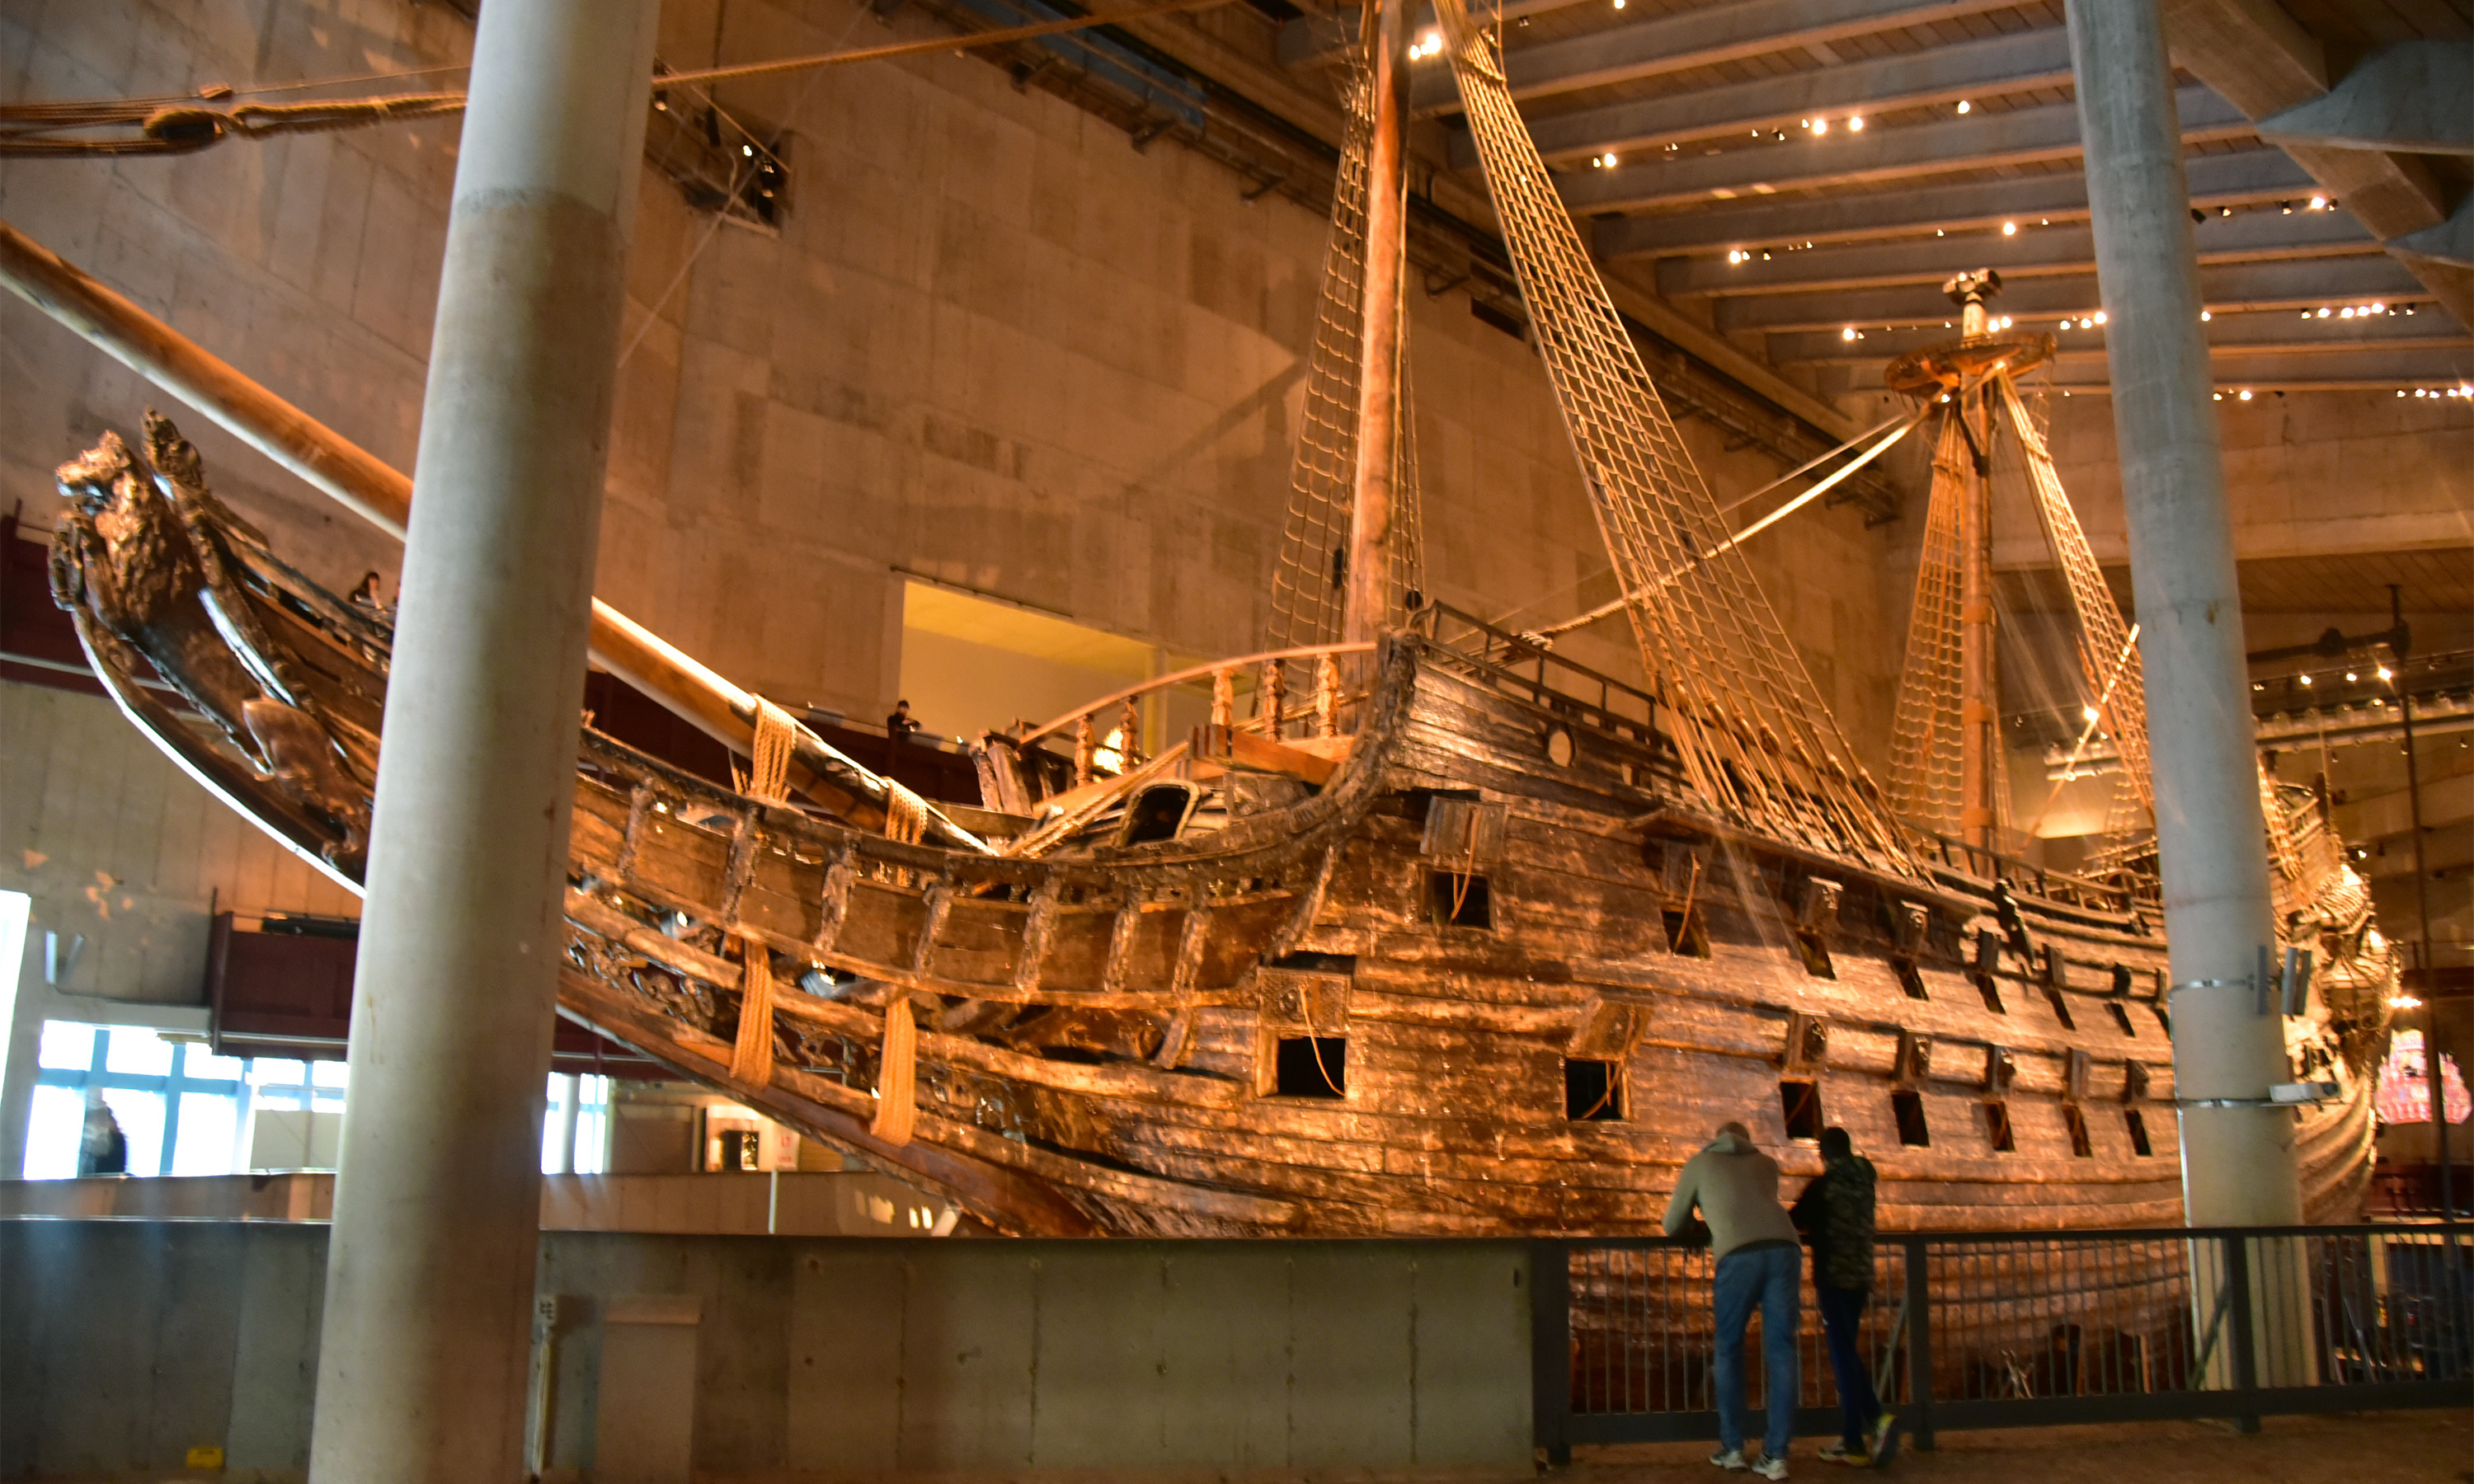 Panorama view of the Vasa boat inside the Vasa museum in Stockholm